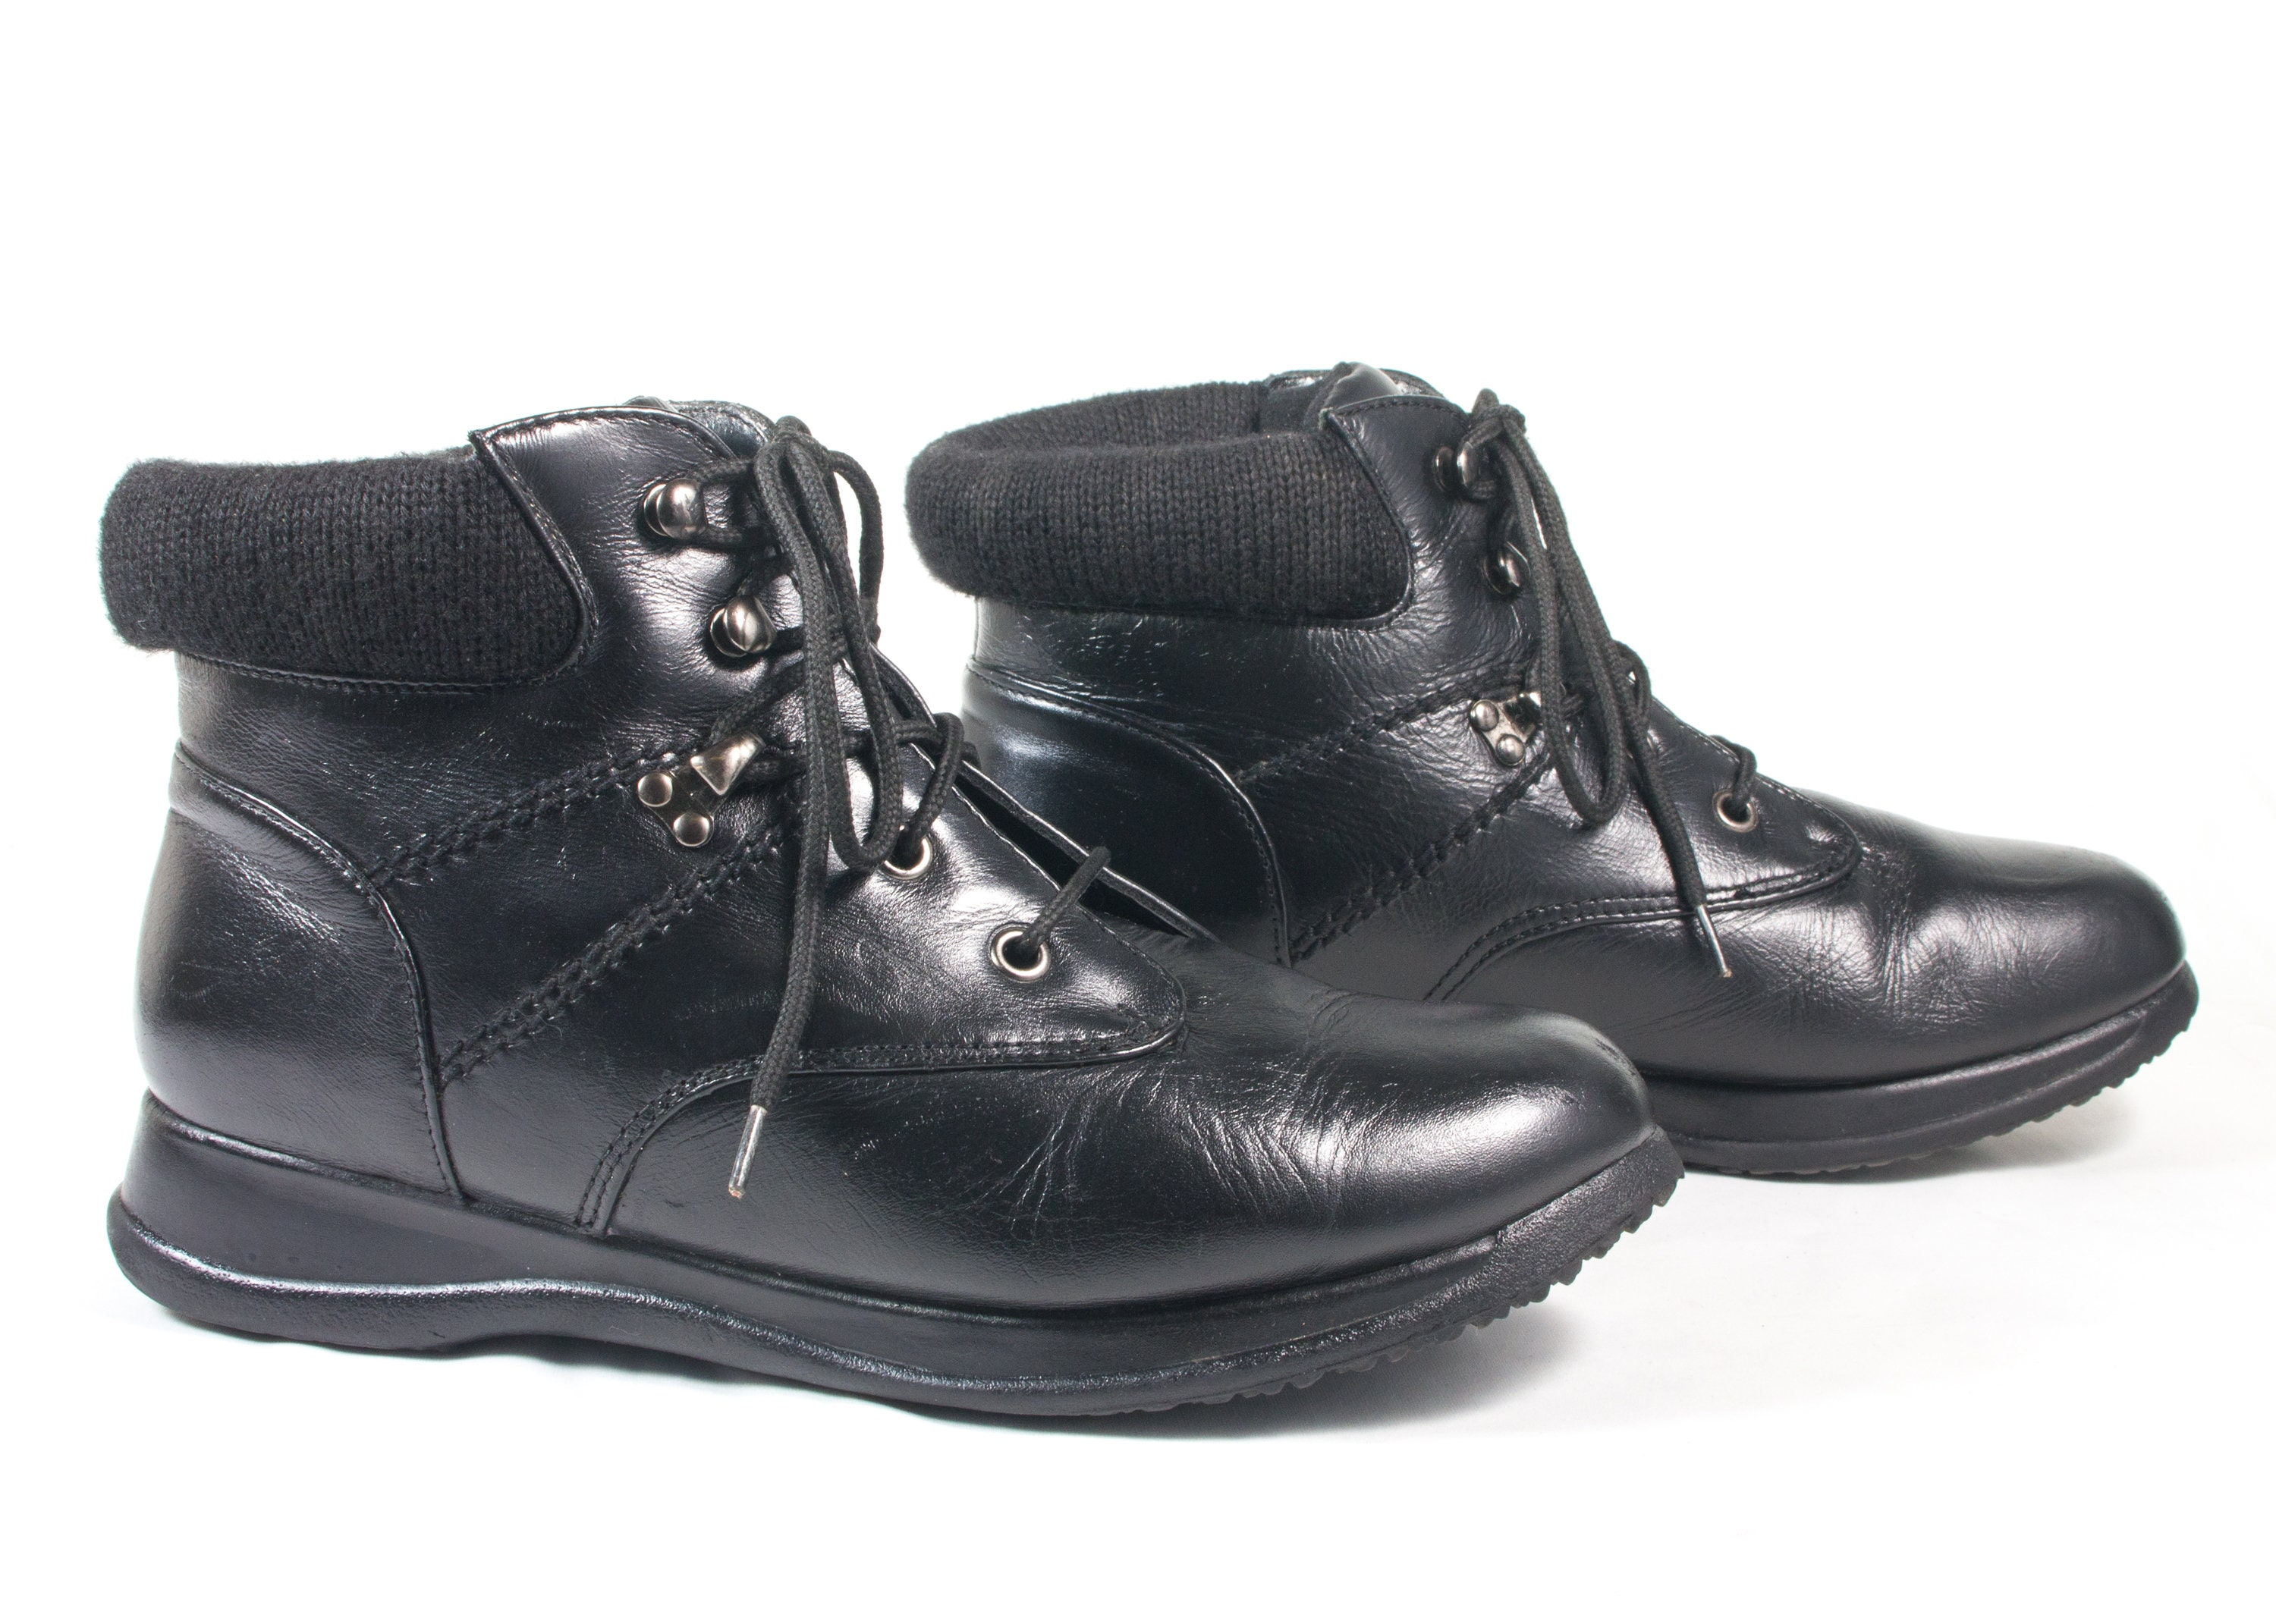 17f22a5f955 VTG 90's size 9 Women's Black Leather Hiking Boots Ankle Boots Lace Up  Comfy Walking Boots Booties